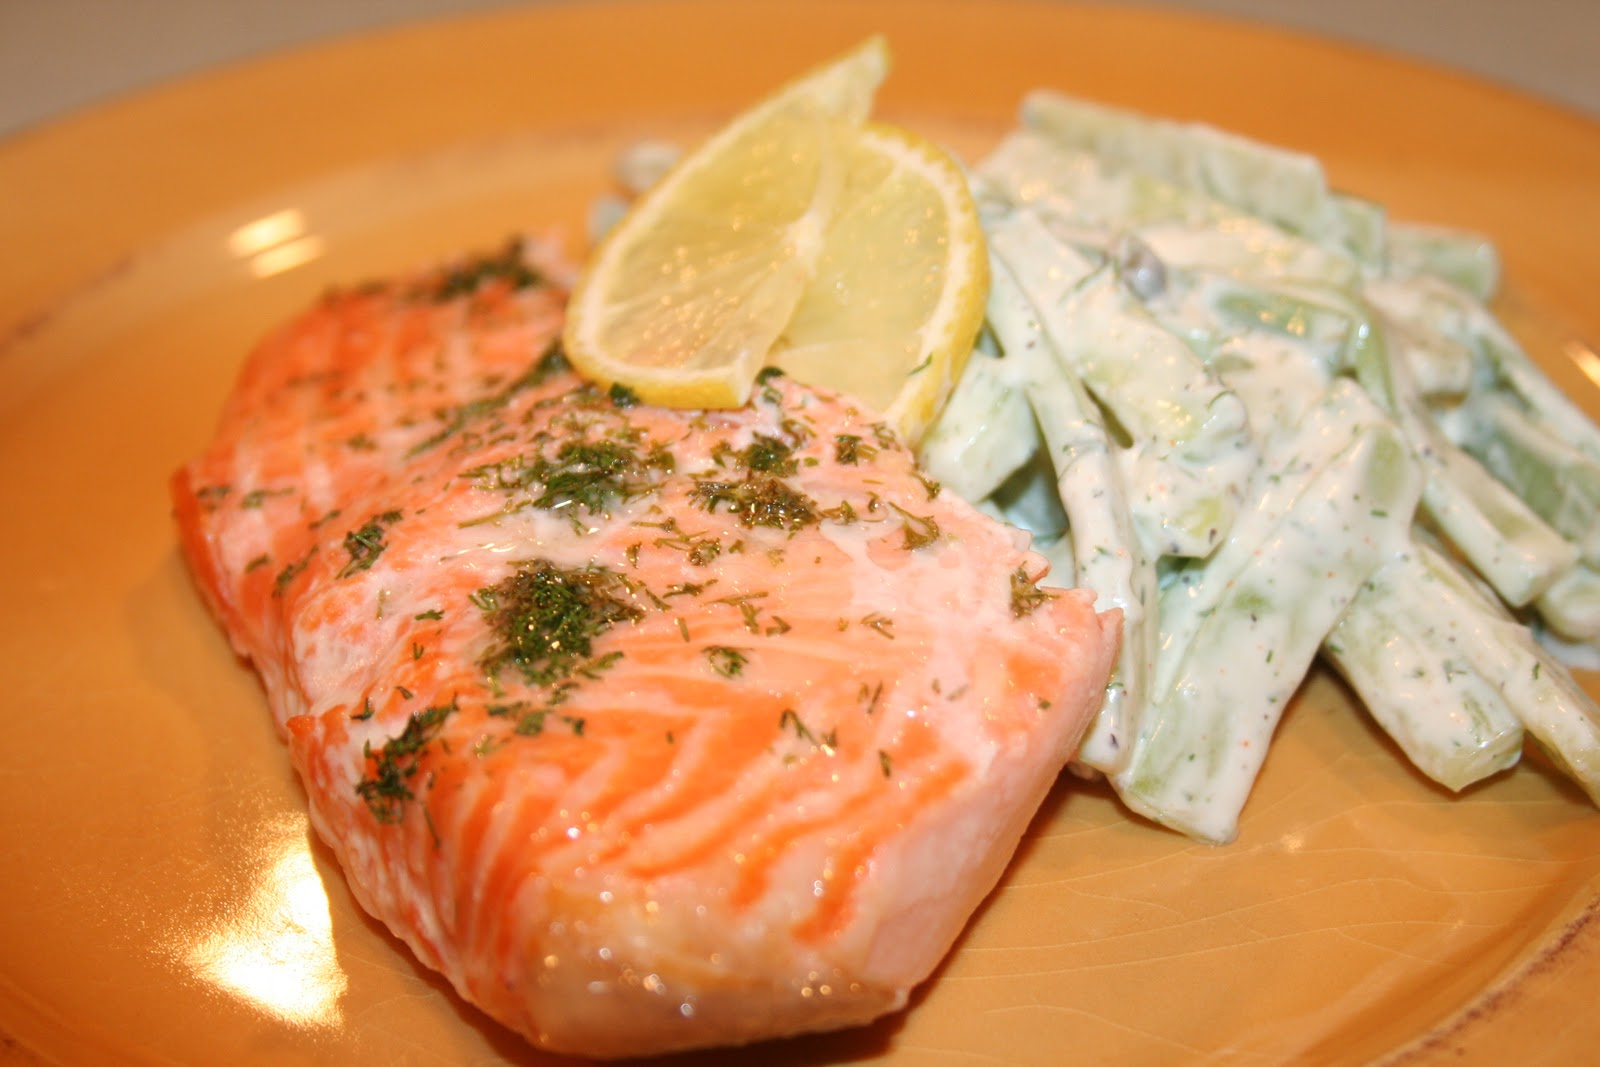 Creamy Dill Sauce (for Smoked or Poached Fish)